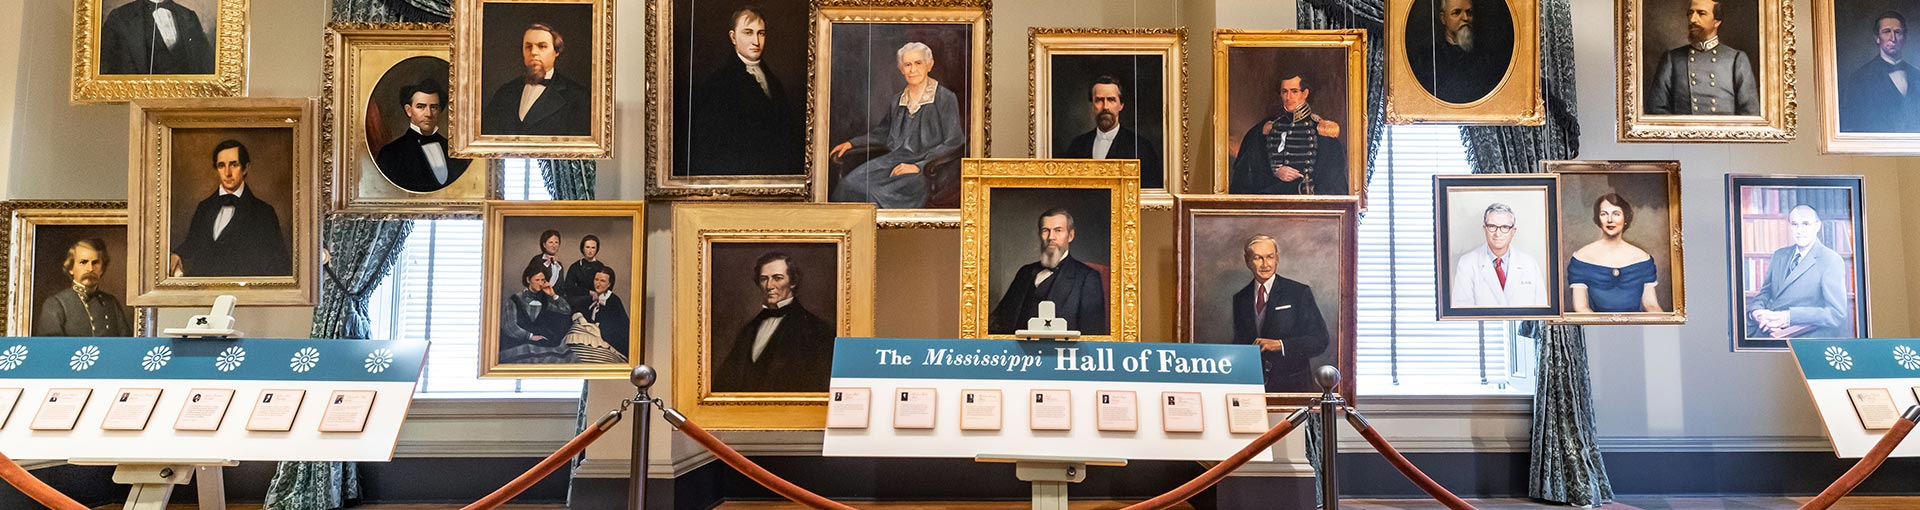 Mississippi Hall of Fame Gallery